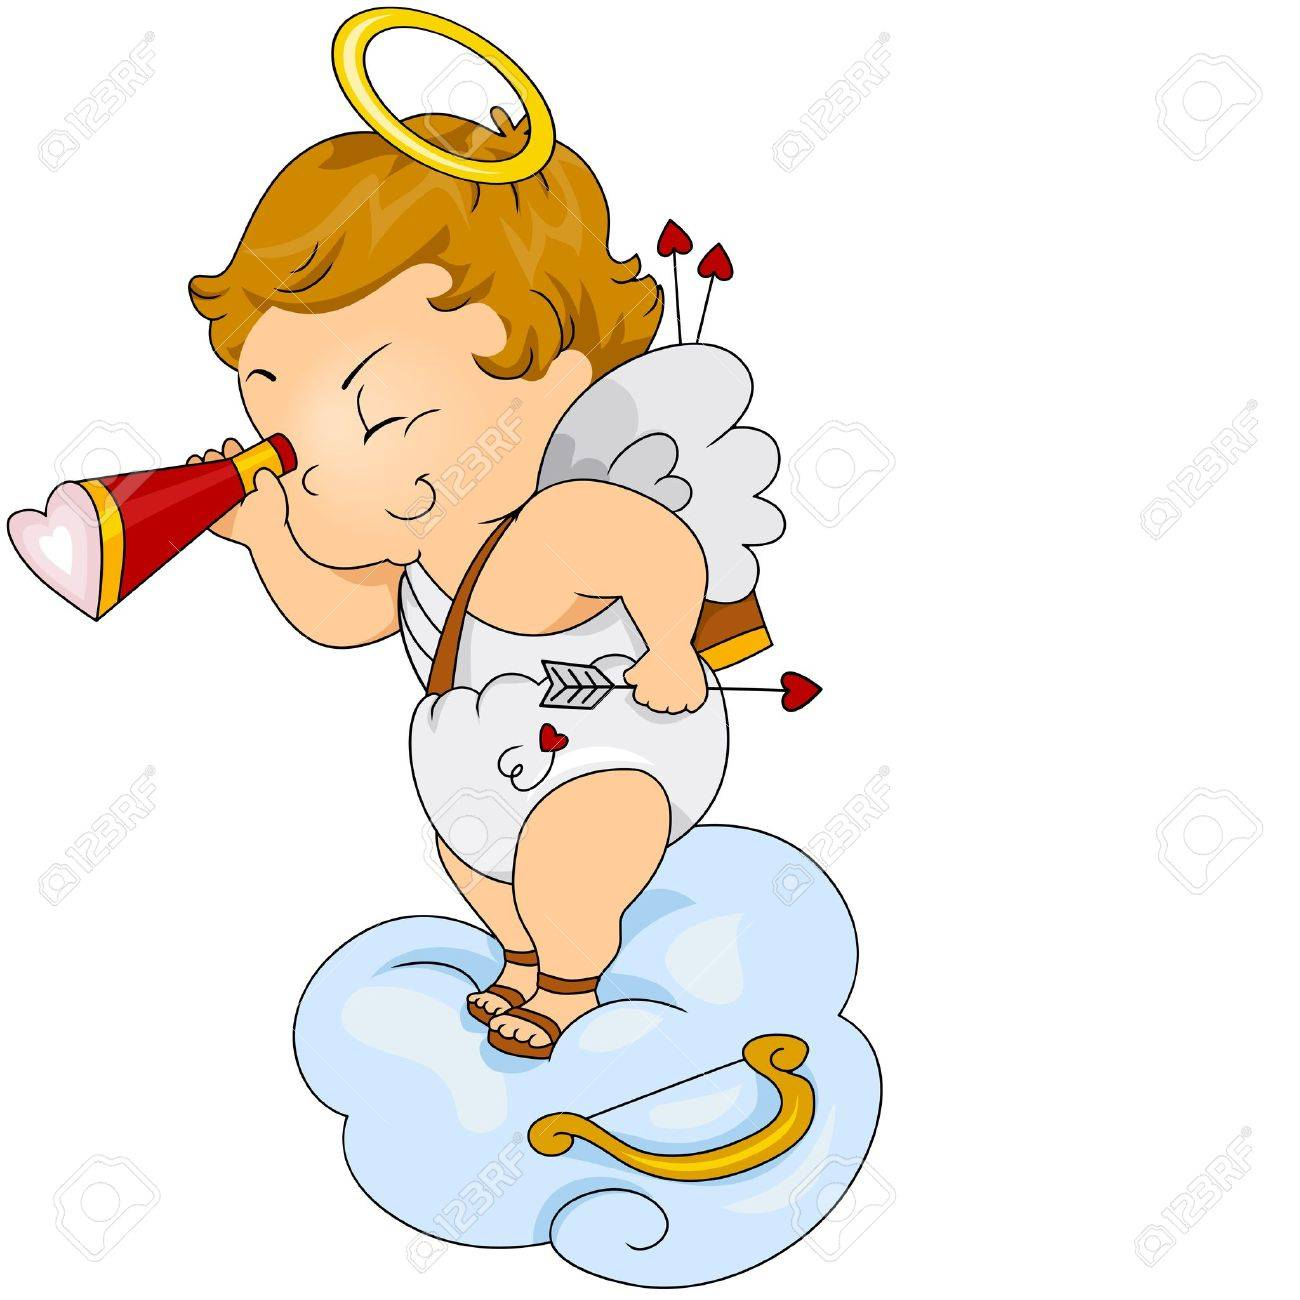 Baby cupid clipart 5 » Clipart Station.